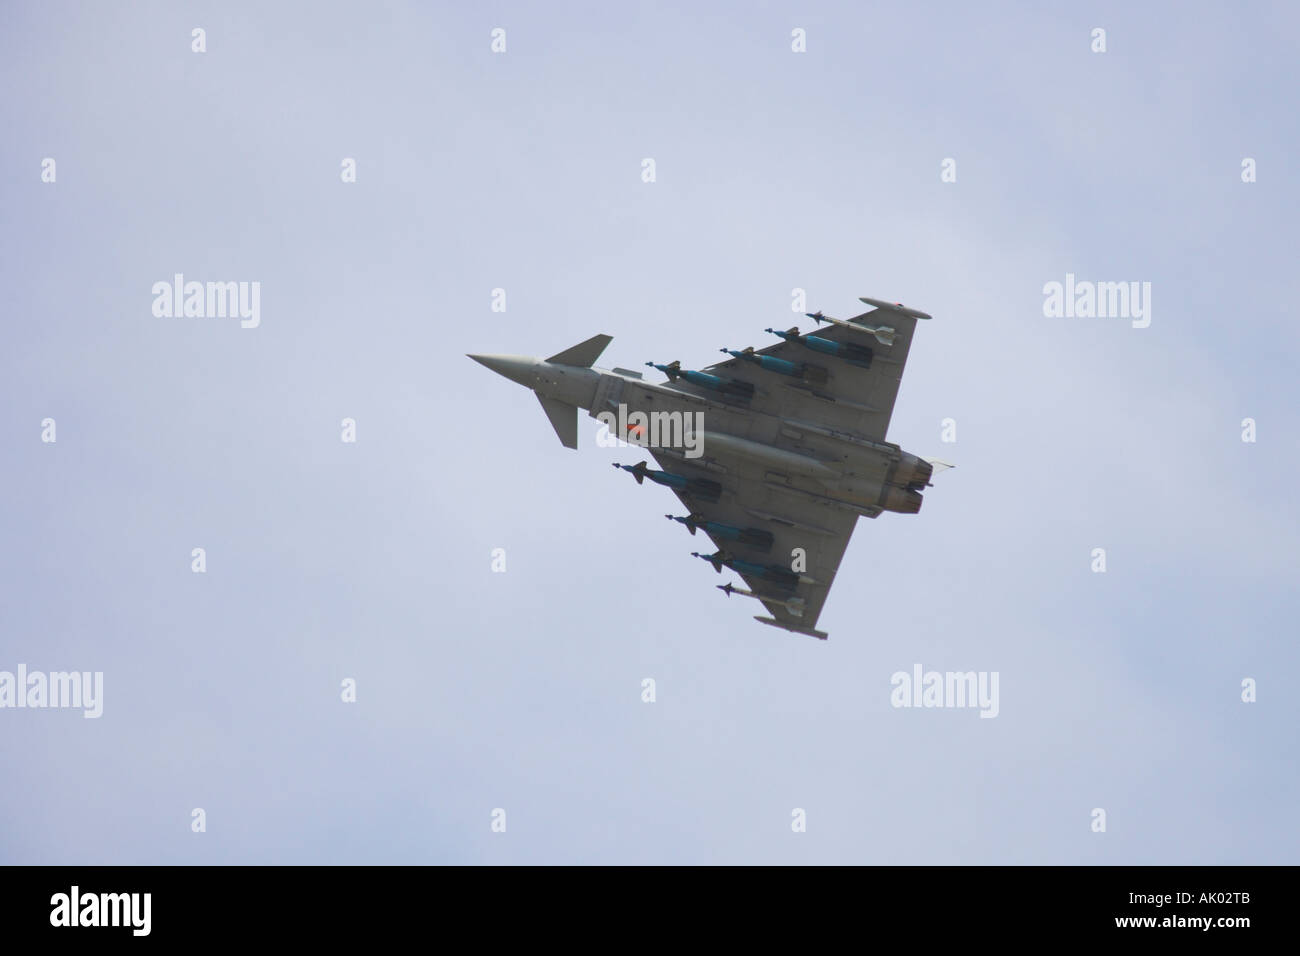 RAF Typhoon Eurofighter making a slow pass - Stock Image